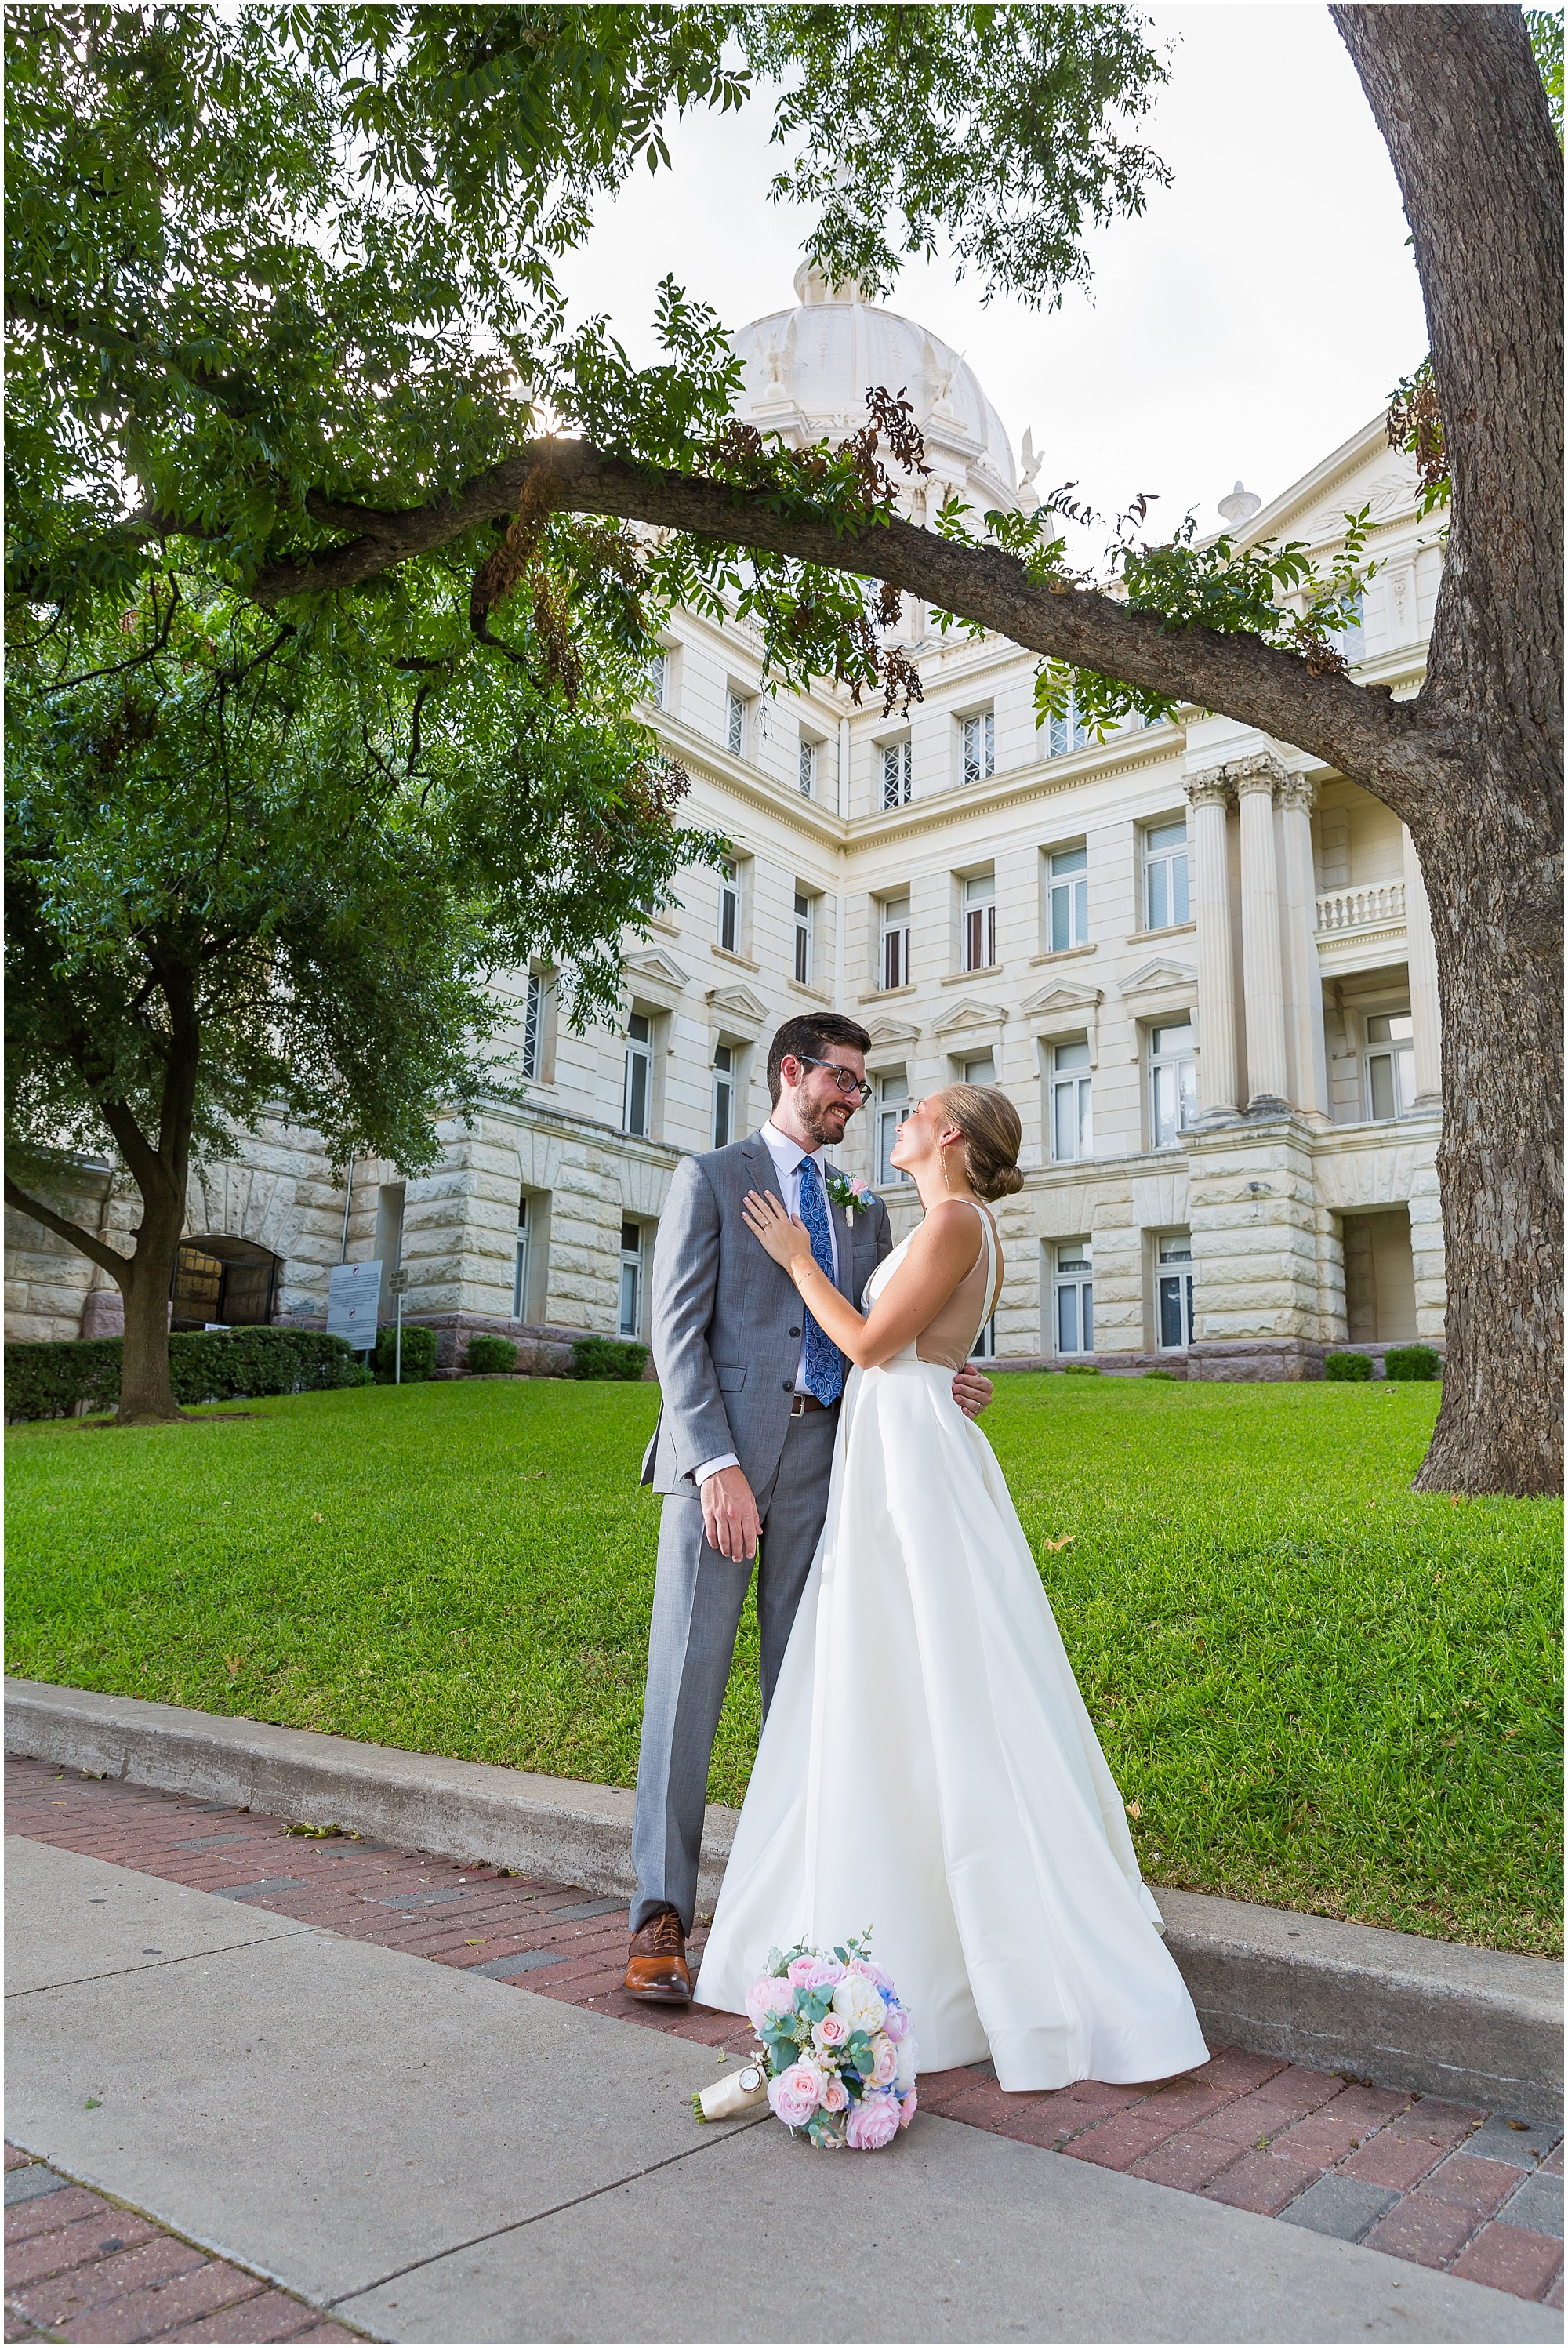 A bride and groom hold one another outside the McLennan County Courthouse in Waco, Texas | Jason & Melaina Photography